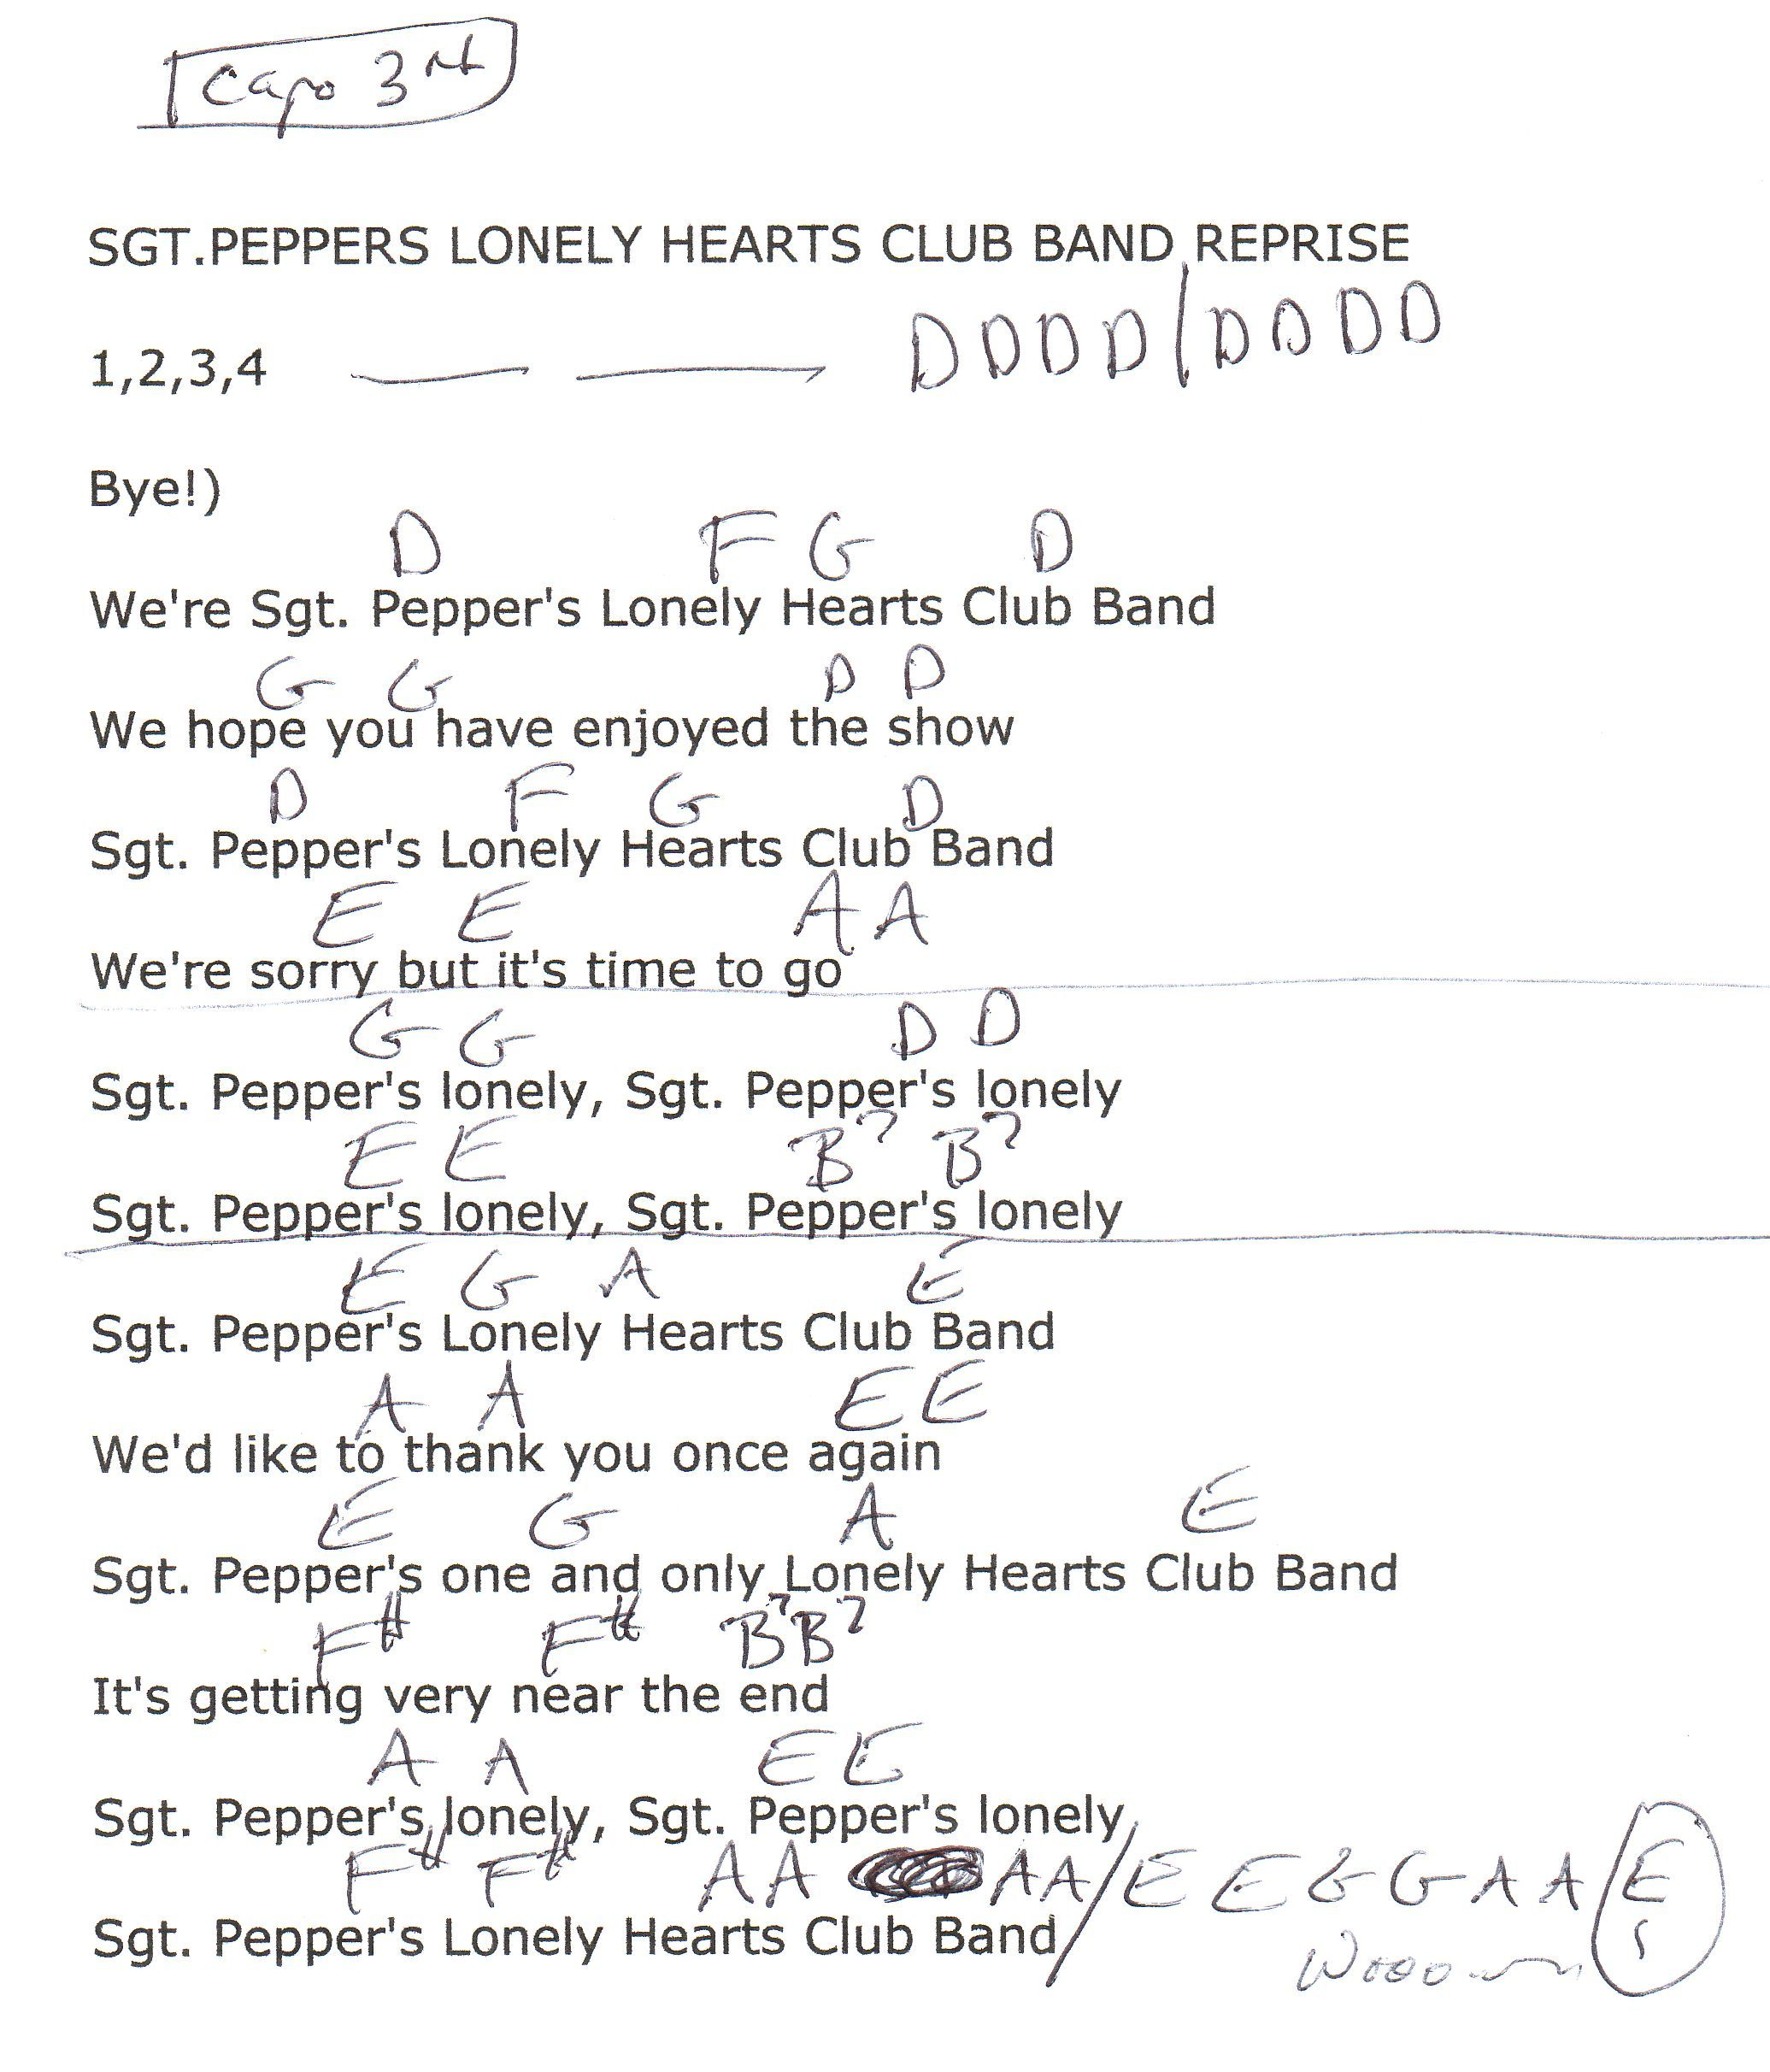 Sgt peppers lonely hearts club band reprise the beatles sgt peppers lonely hearts club band reprise the beatles guitar chord chart hexwebz Gallery